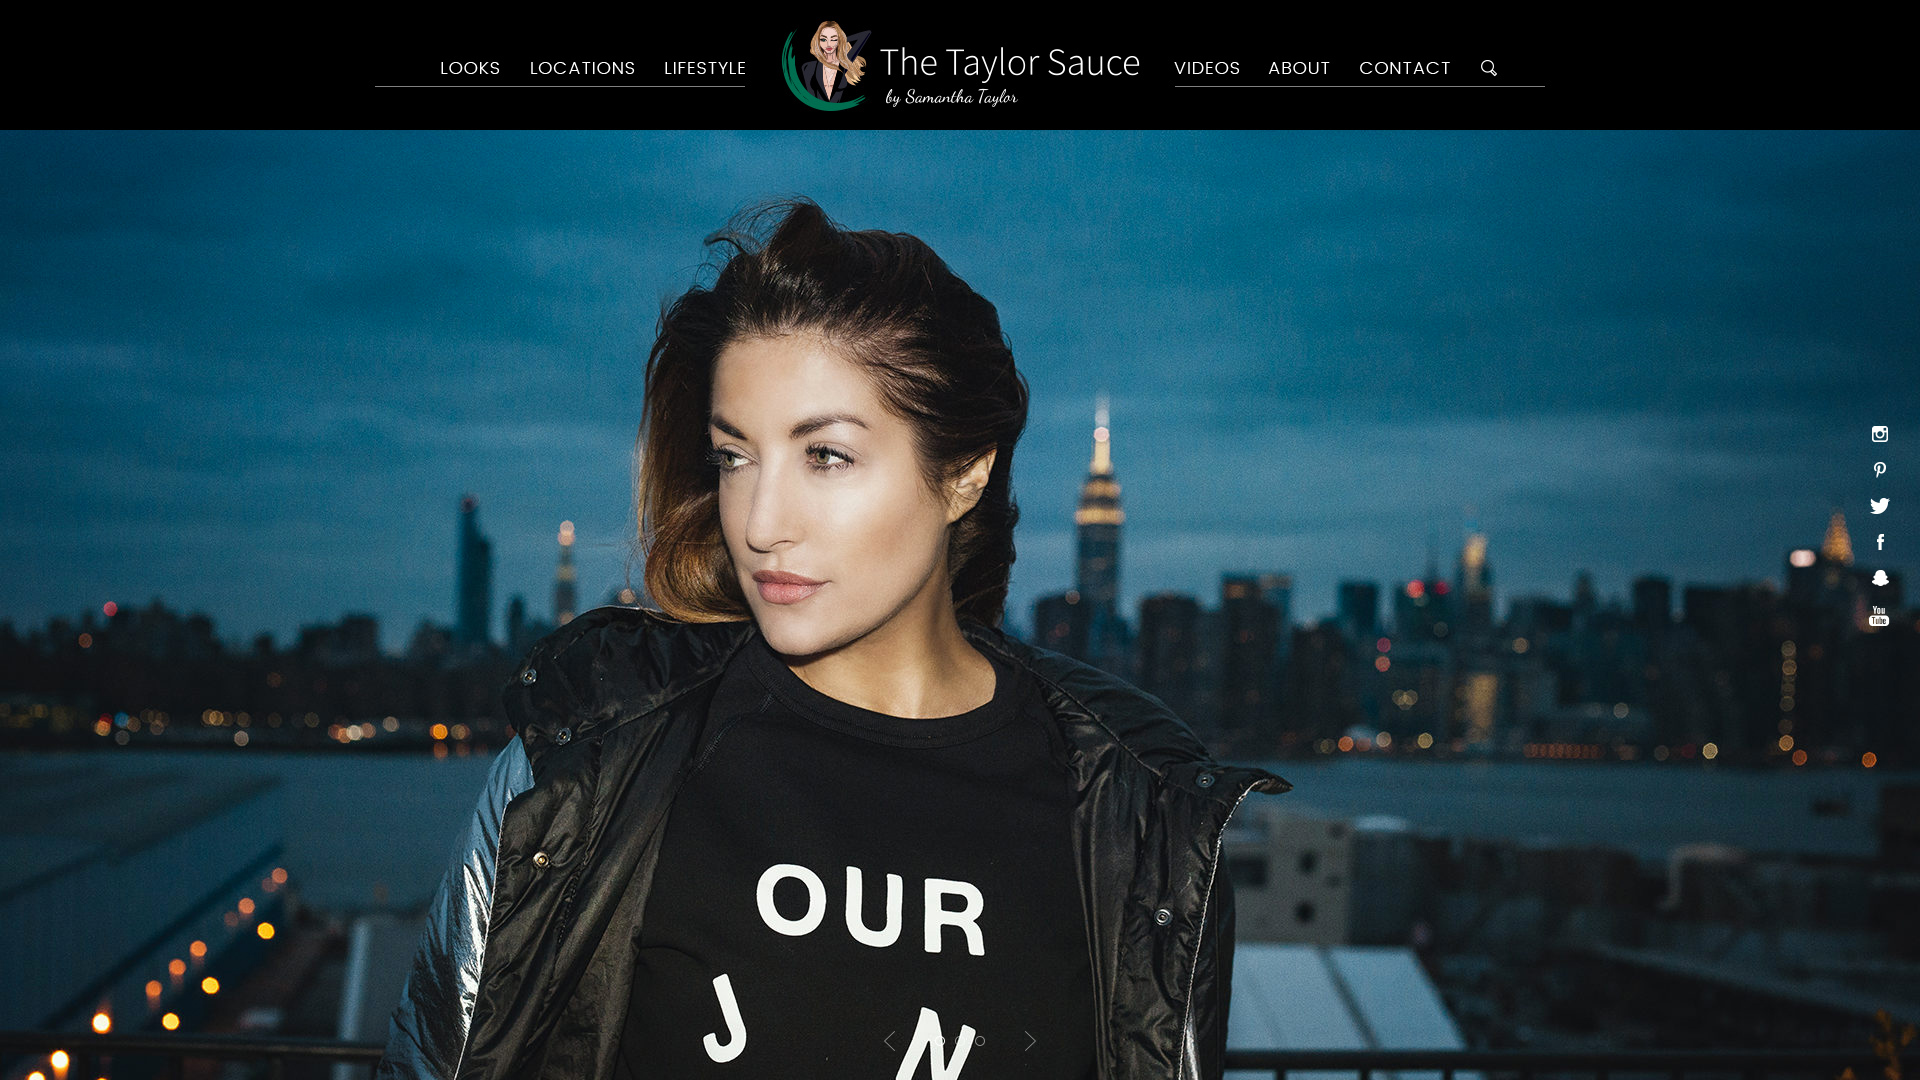 The Taylor Sauce Website Design Preview